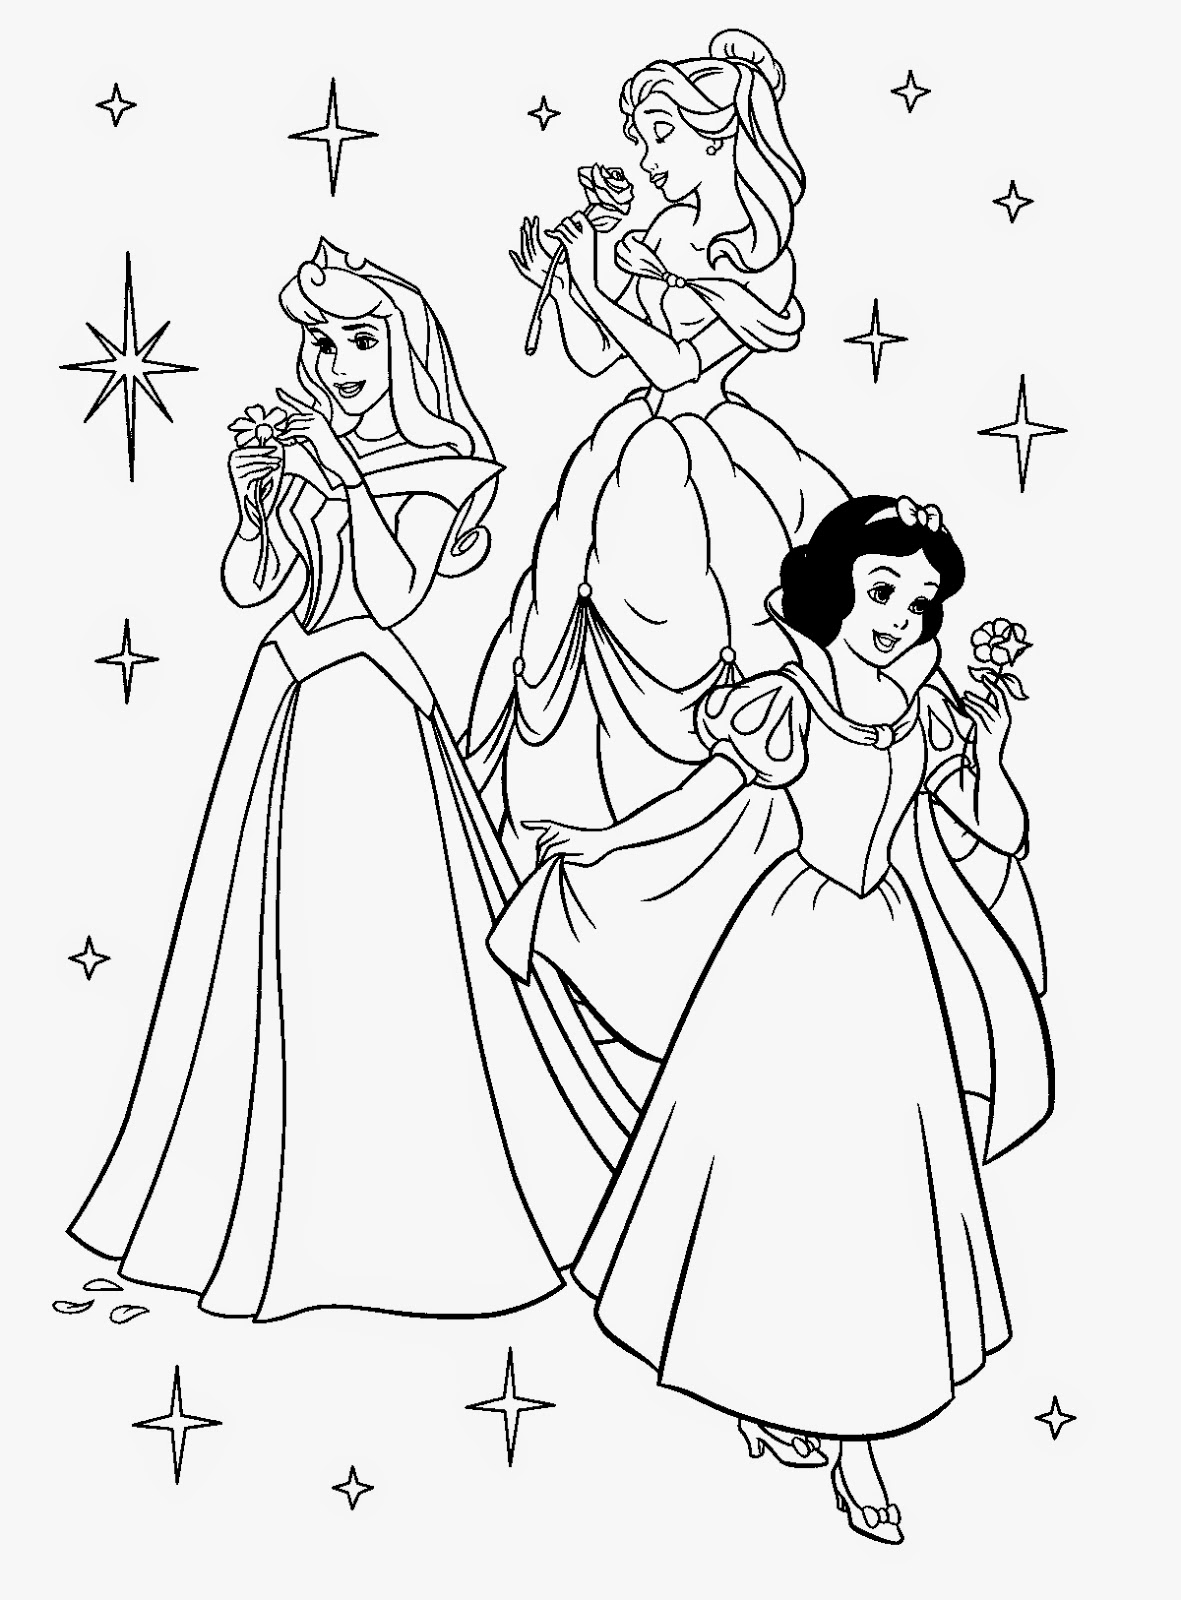 Disney coloring pages to print frozen - Coloring Pages Frozen To Print